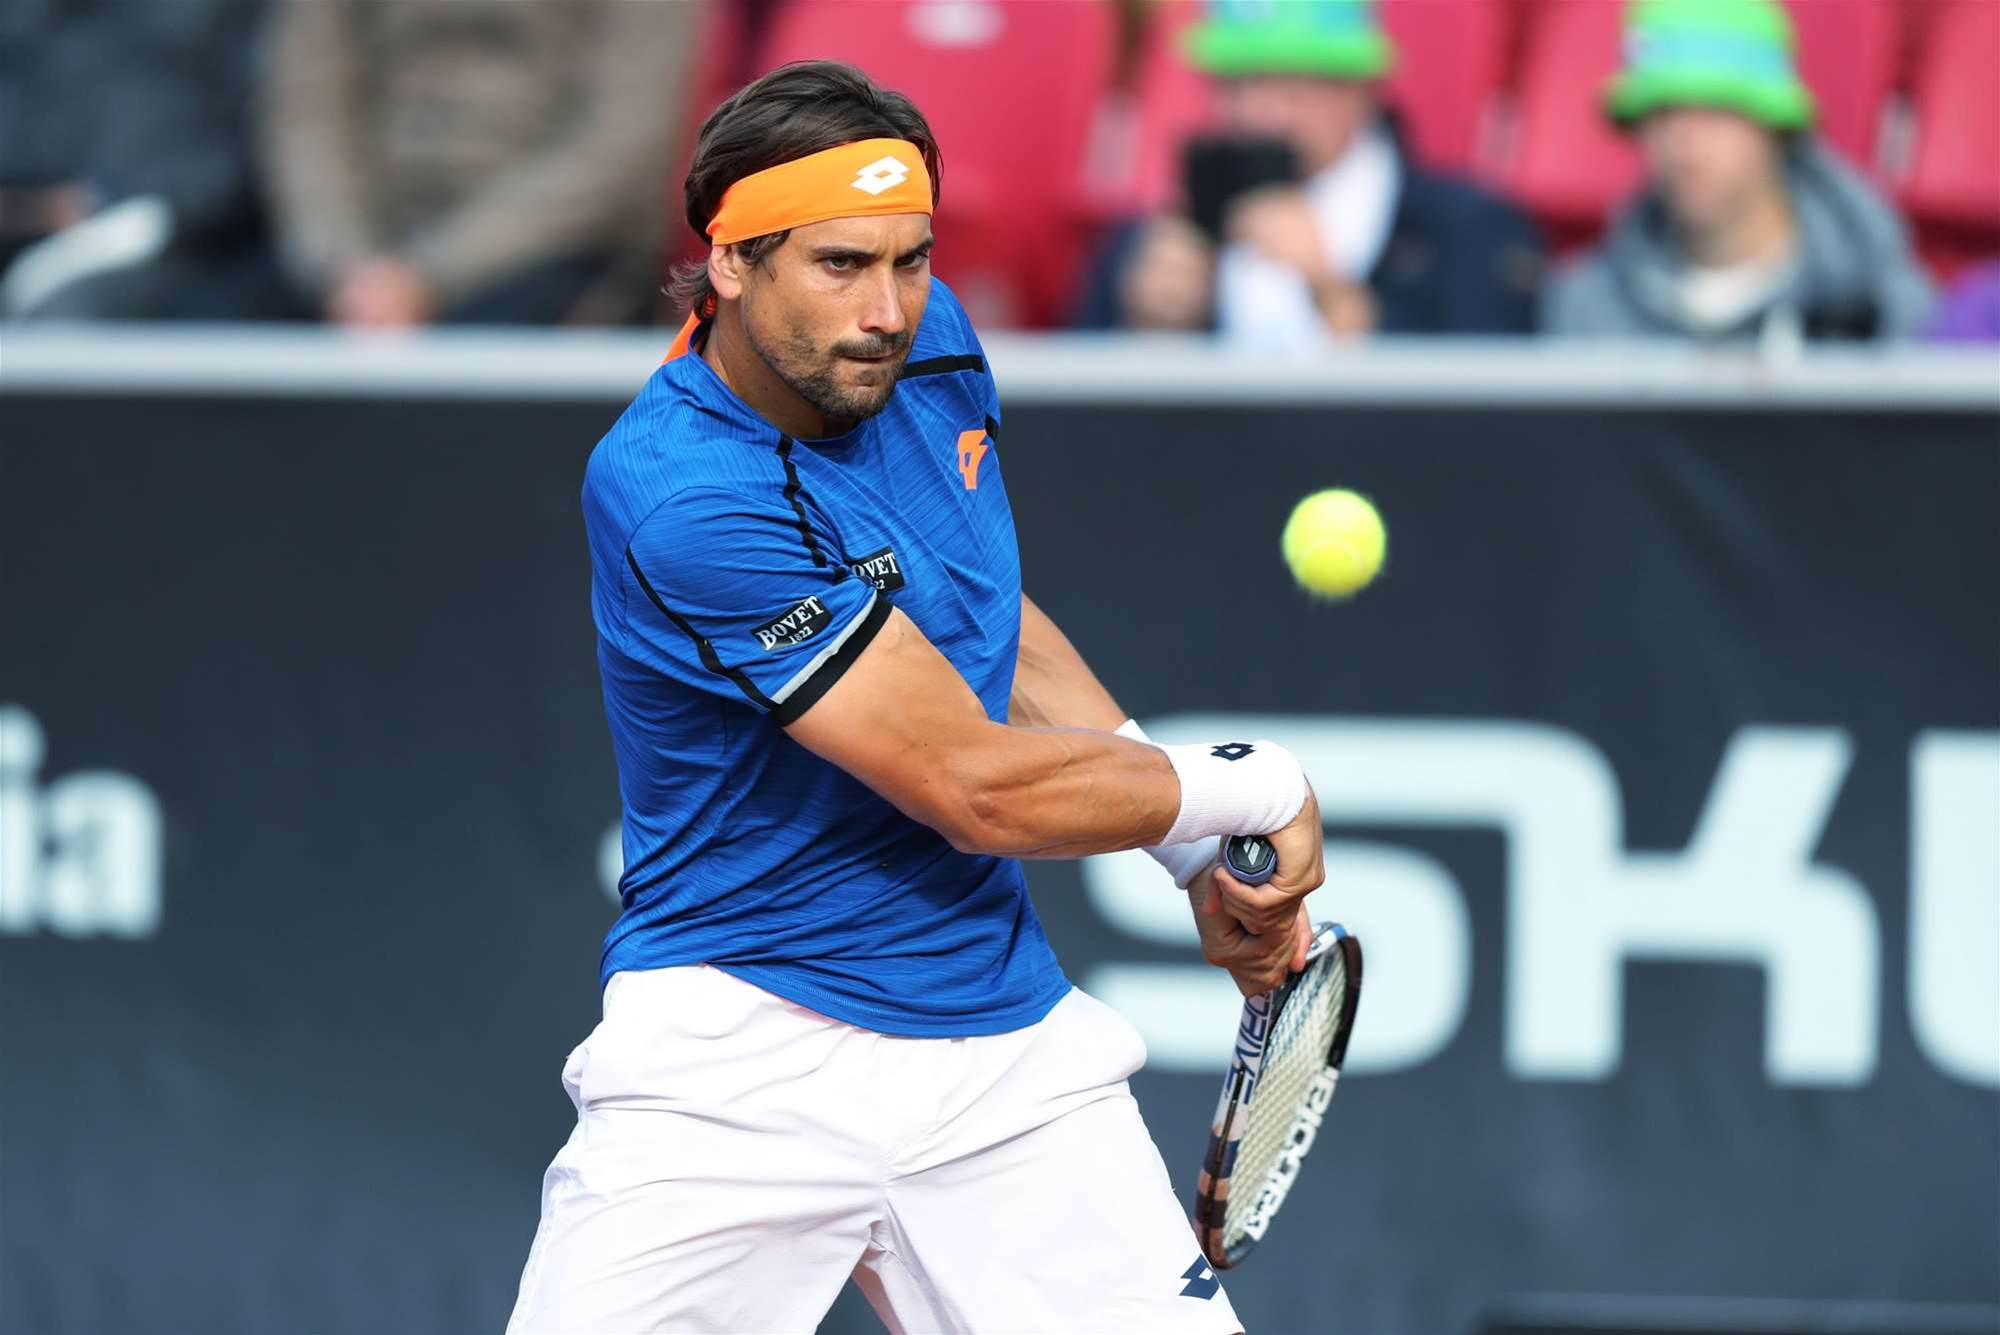 Action from the Swedish Open